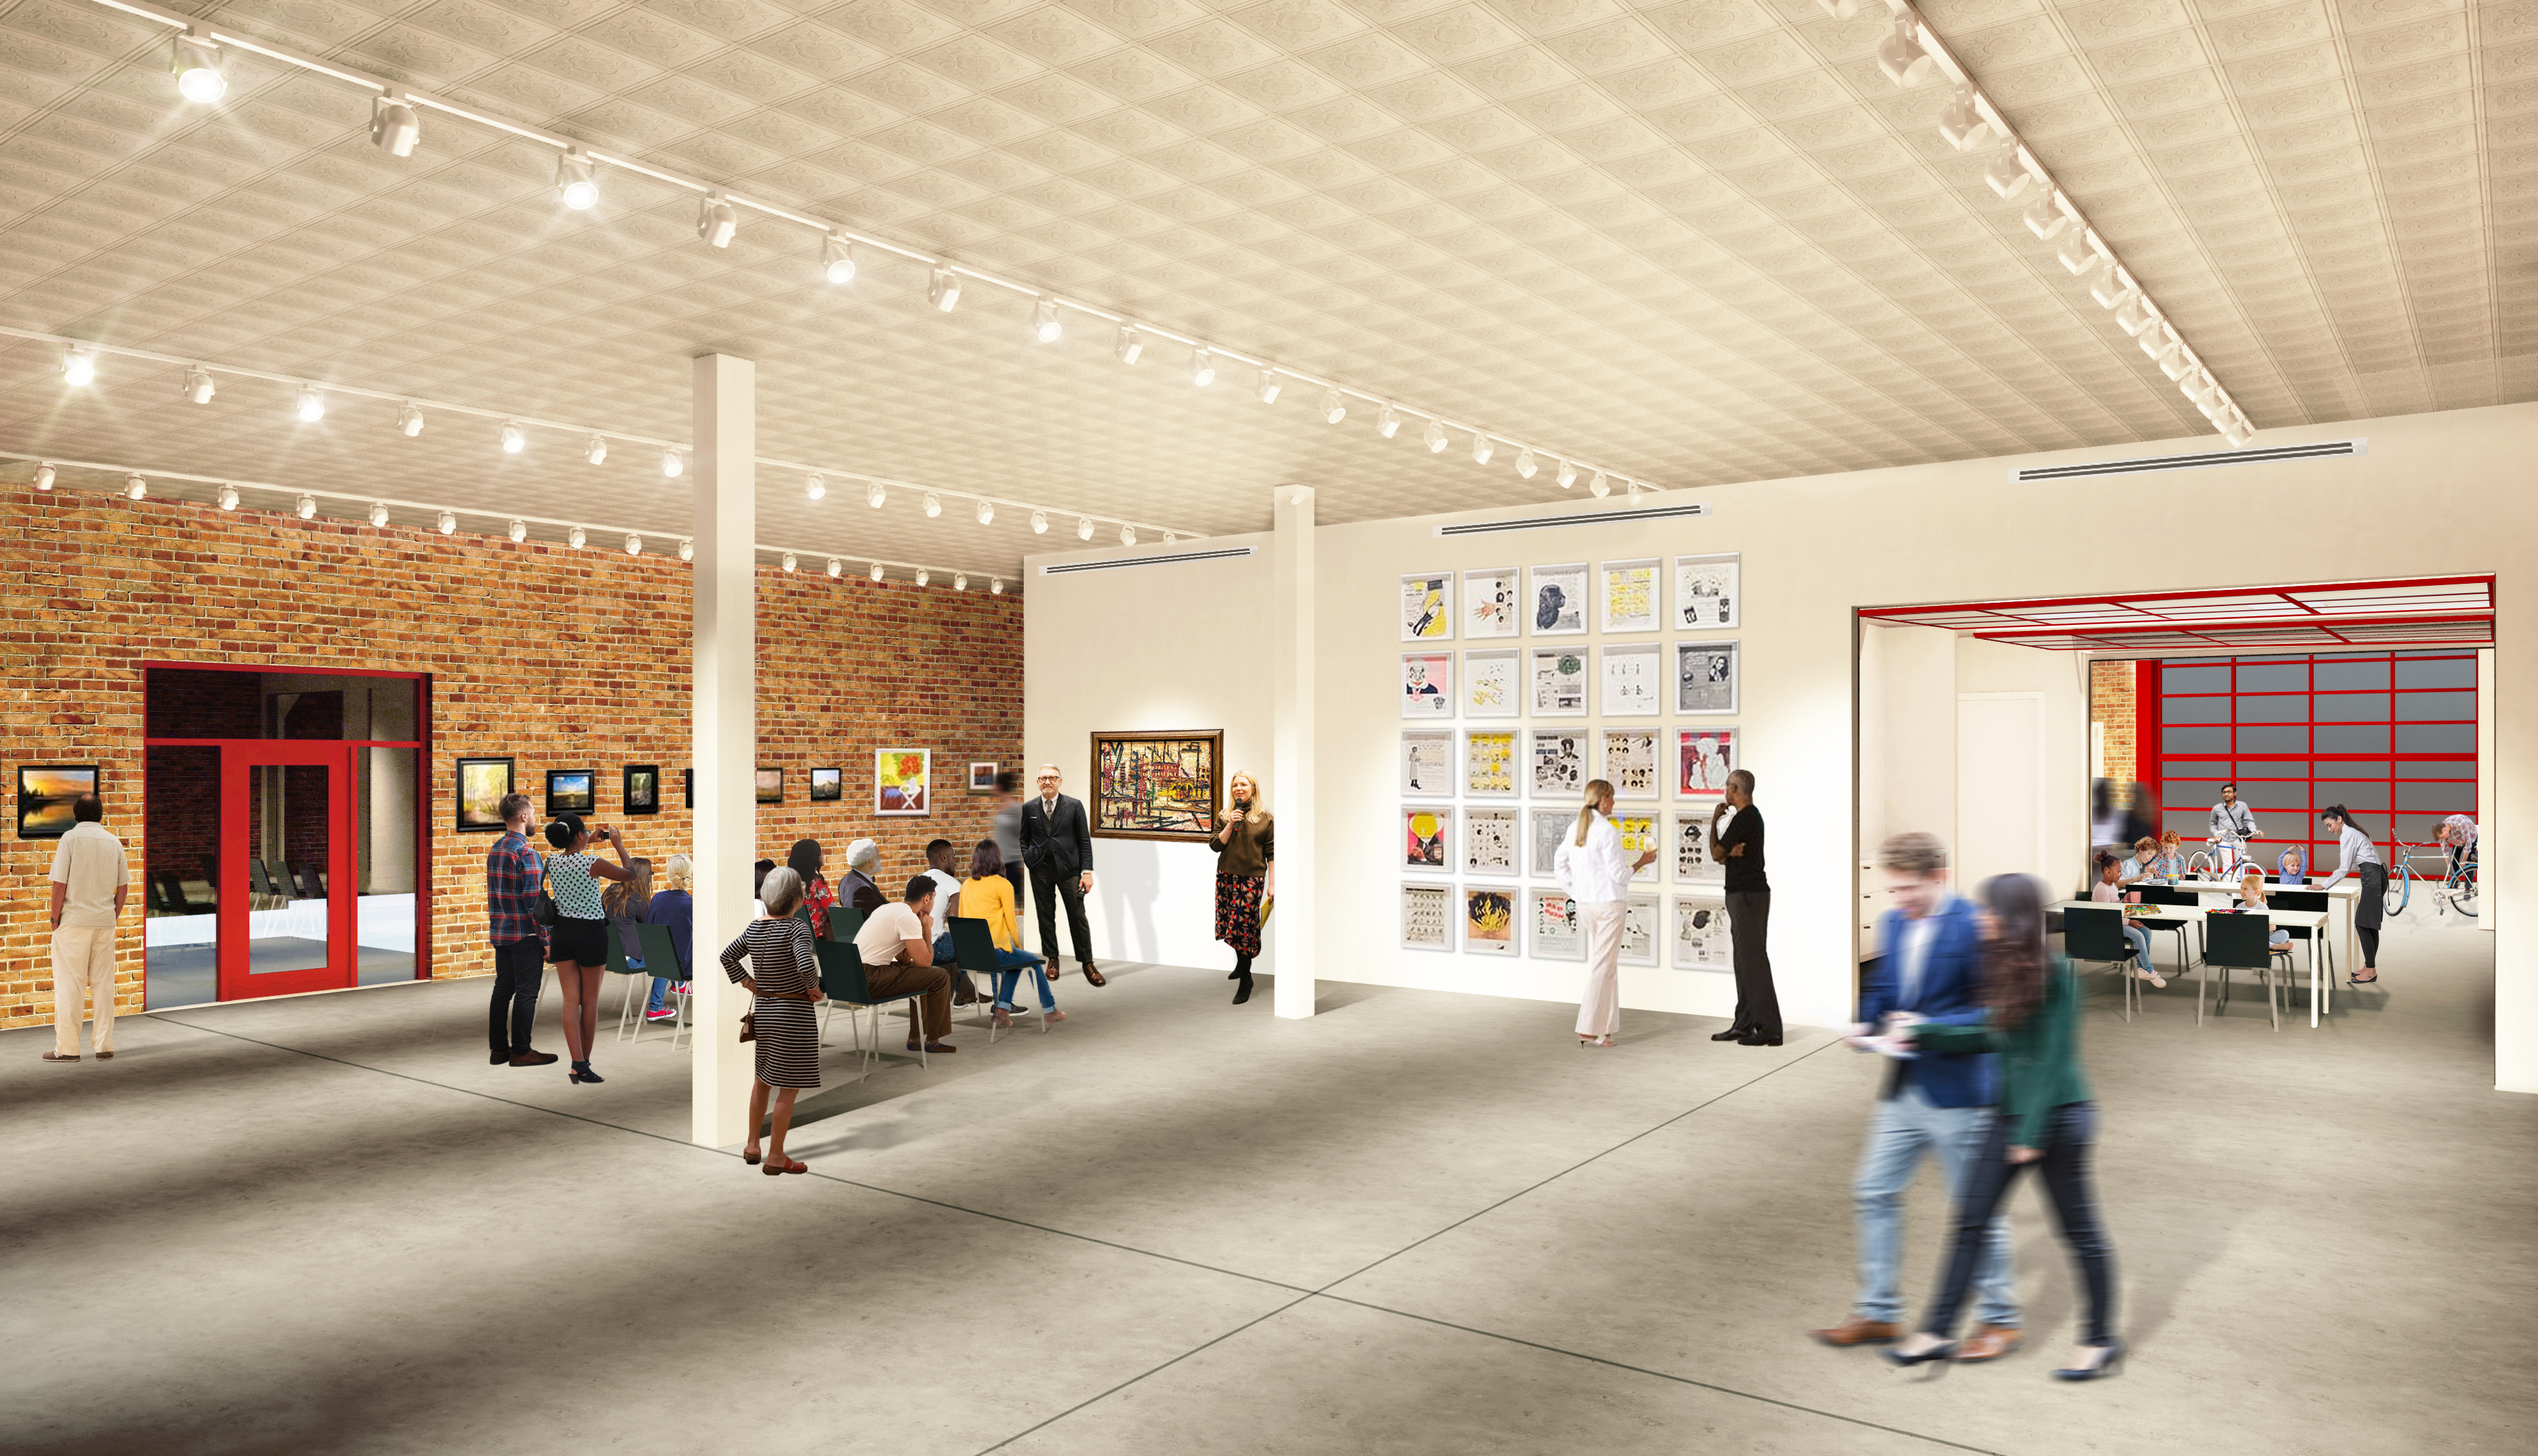 Gallery and multipurpose space